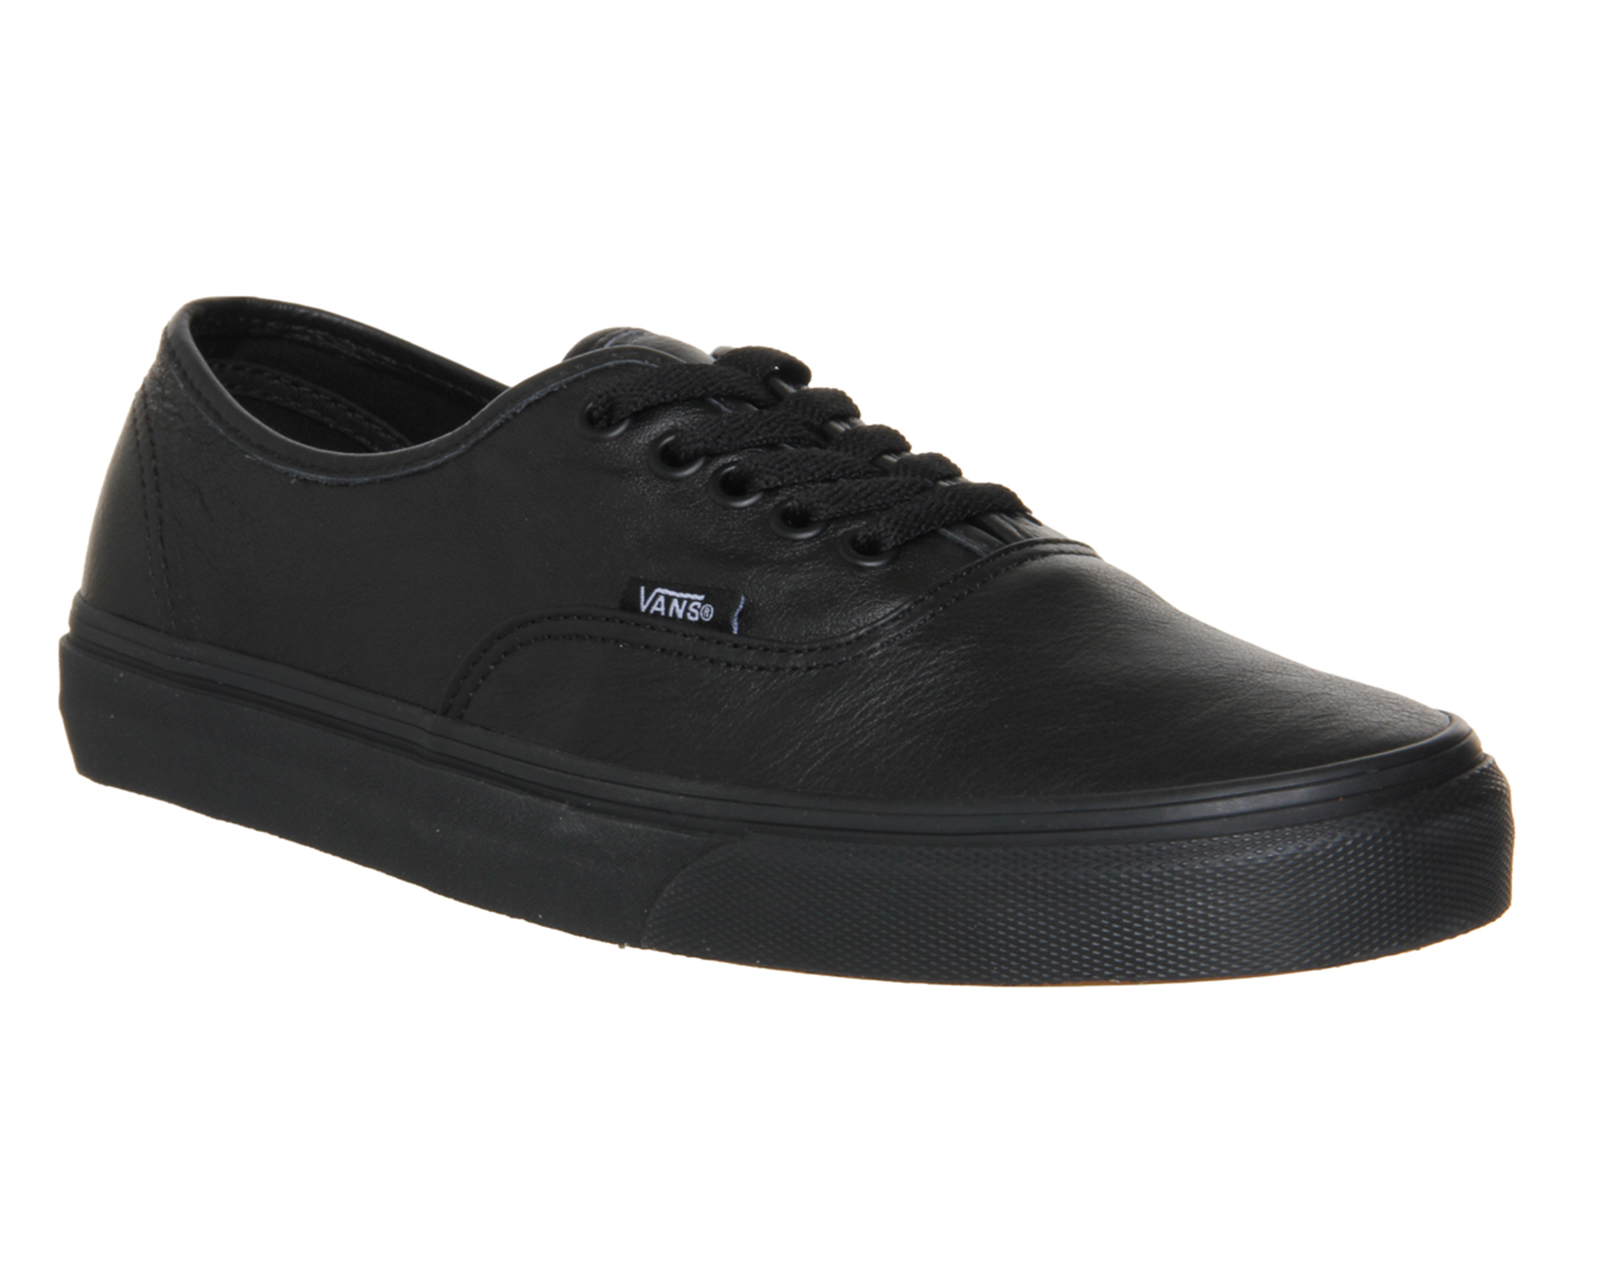 82938189a1 Buy how much are black vans   OFF77% Discounts